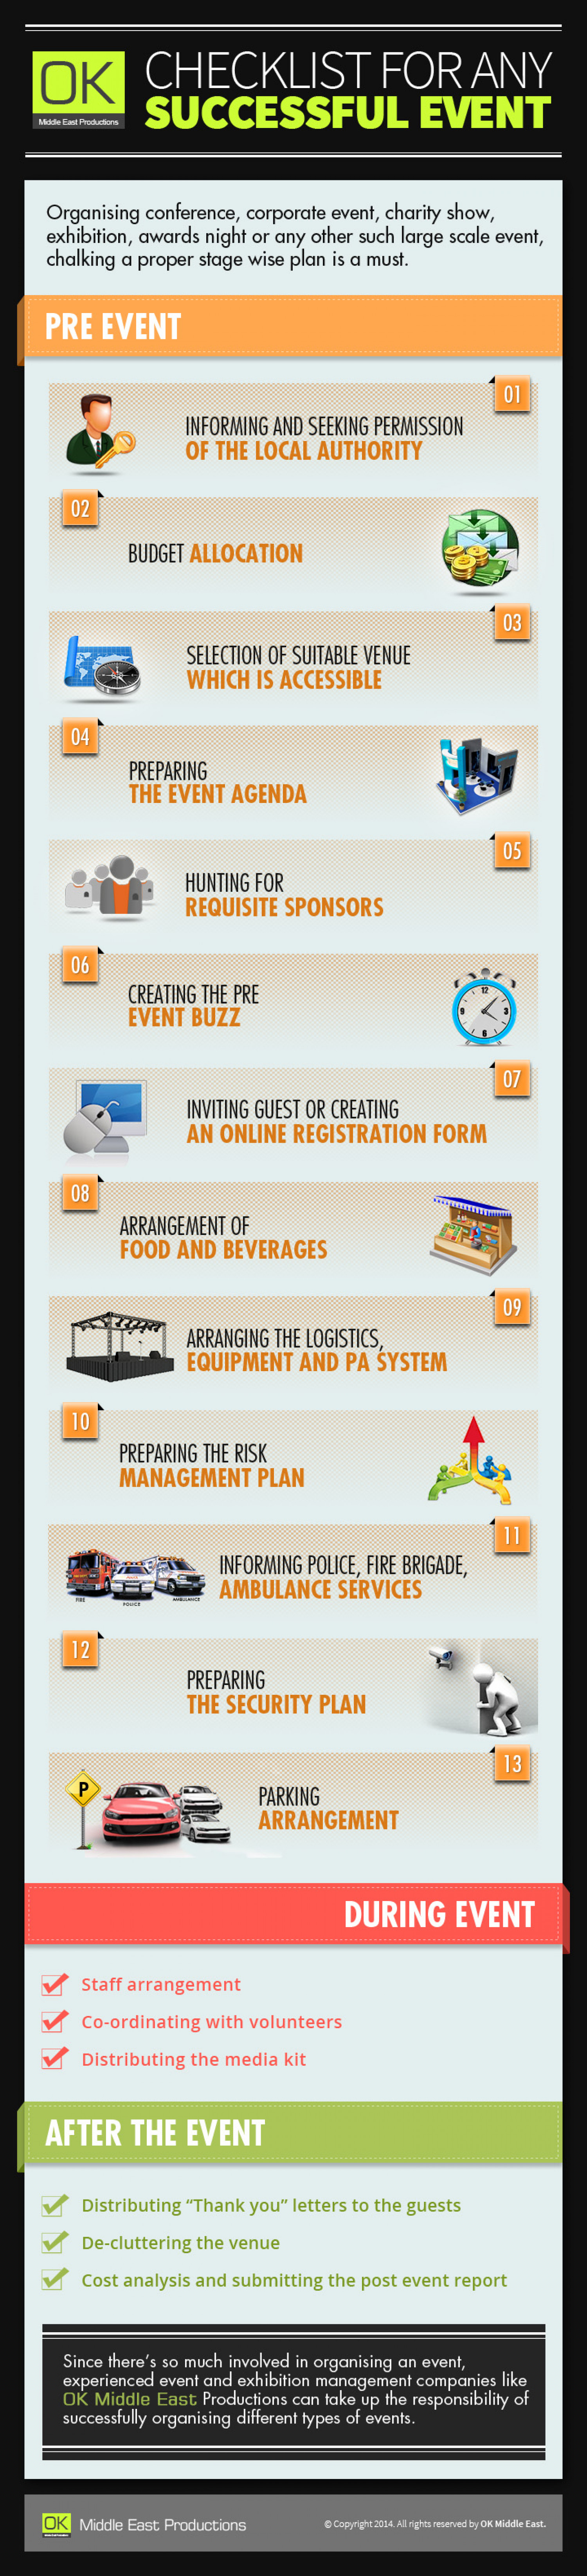 Checklist for any Successful Event Infographic